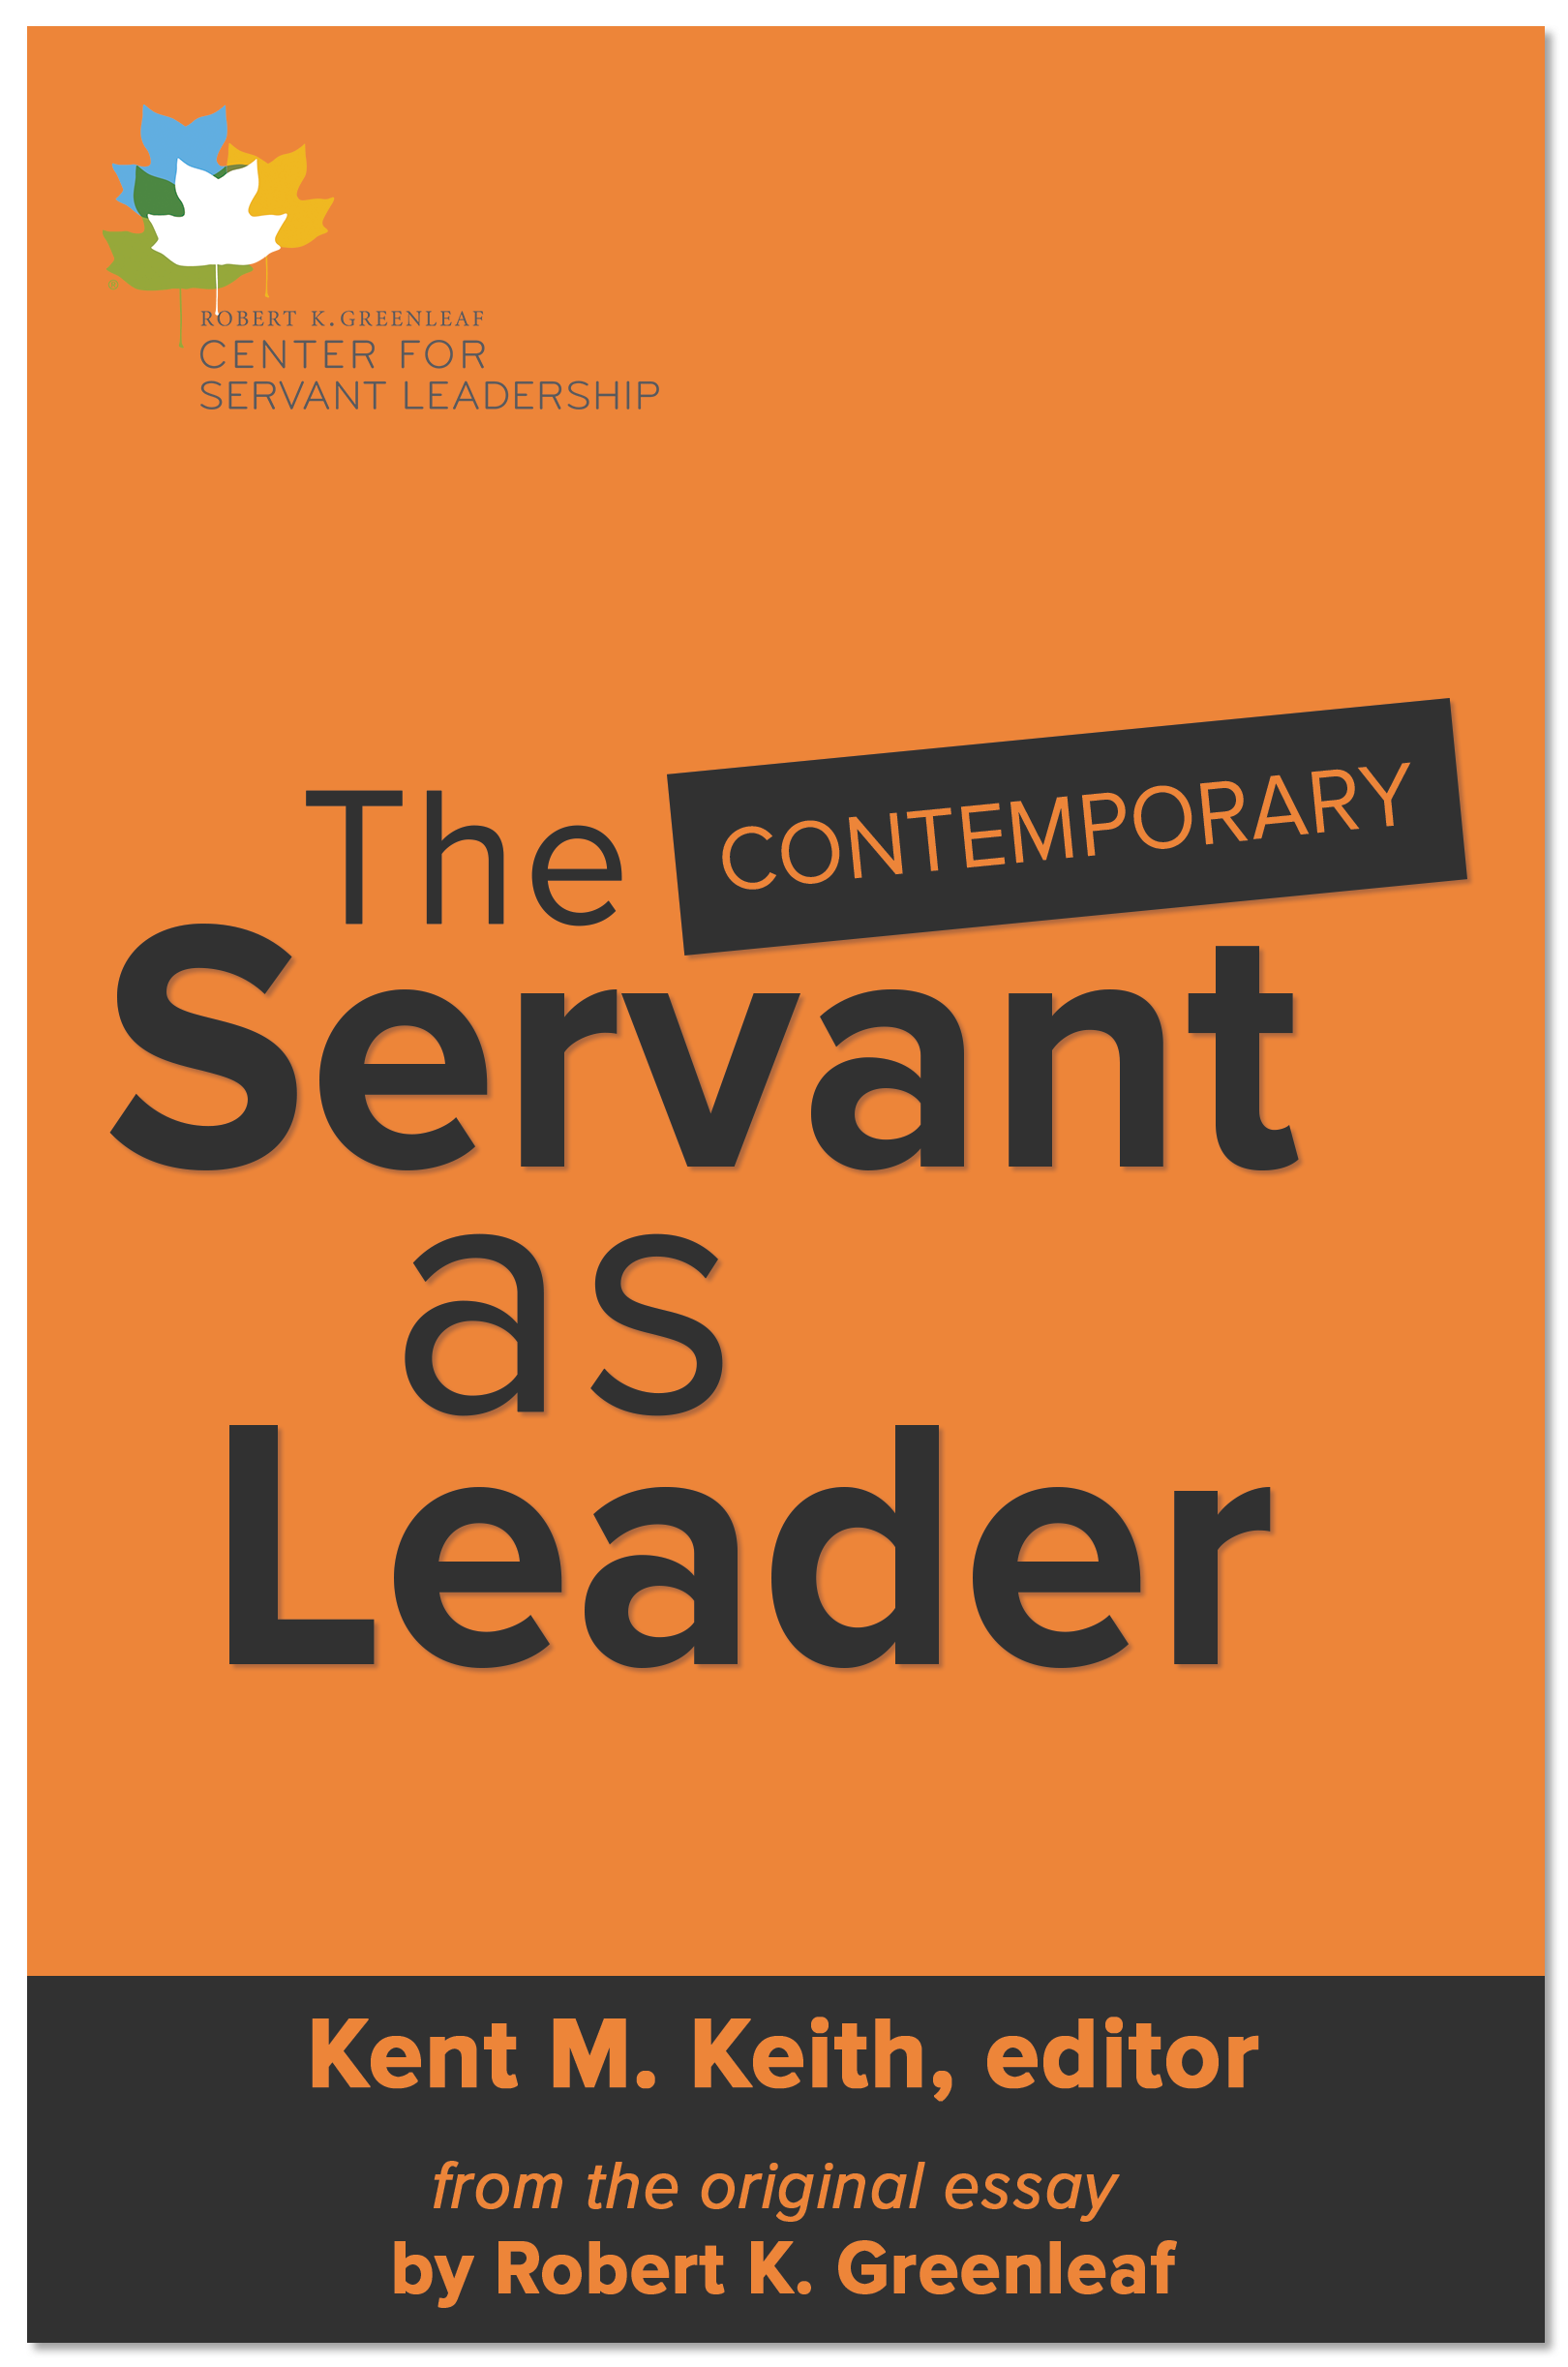 the servant as leader the case for servant leadership the contemporary servant as leader e book